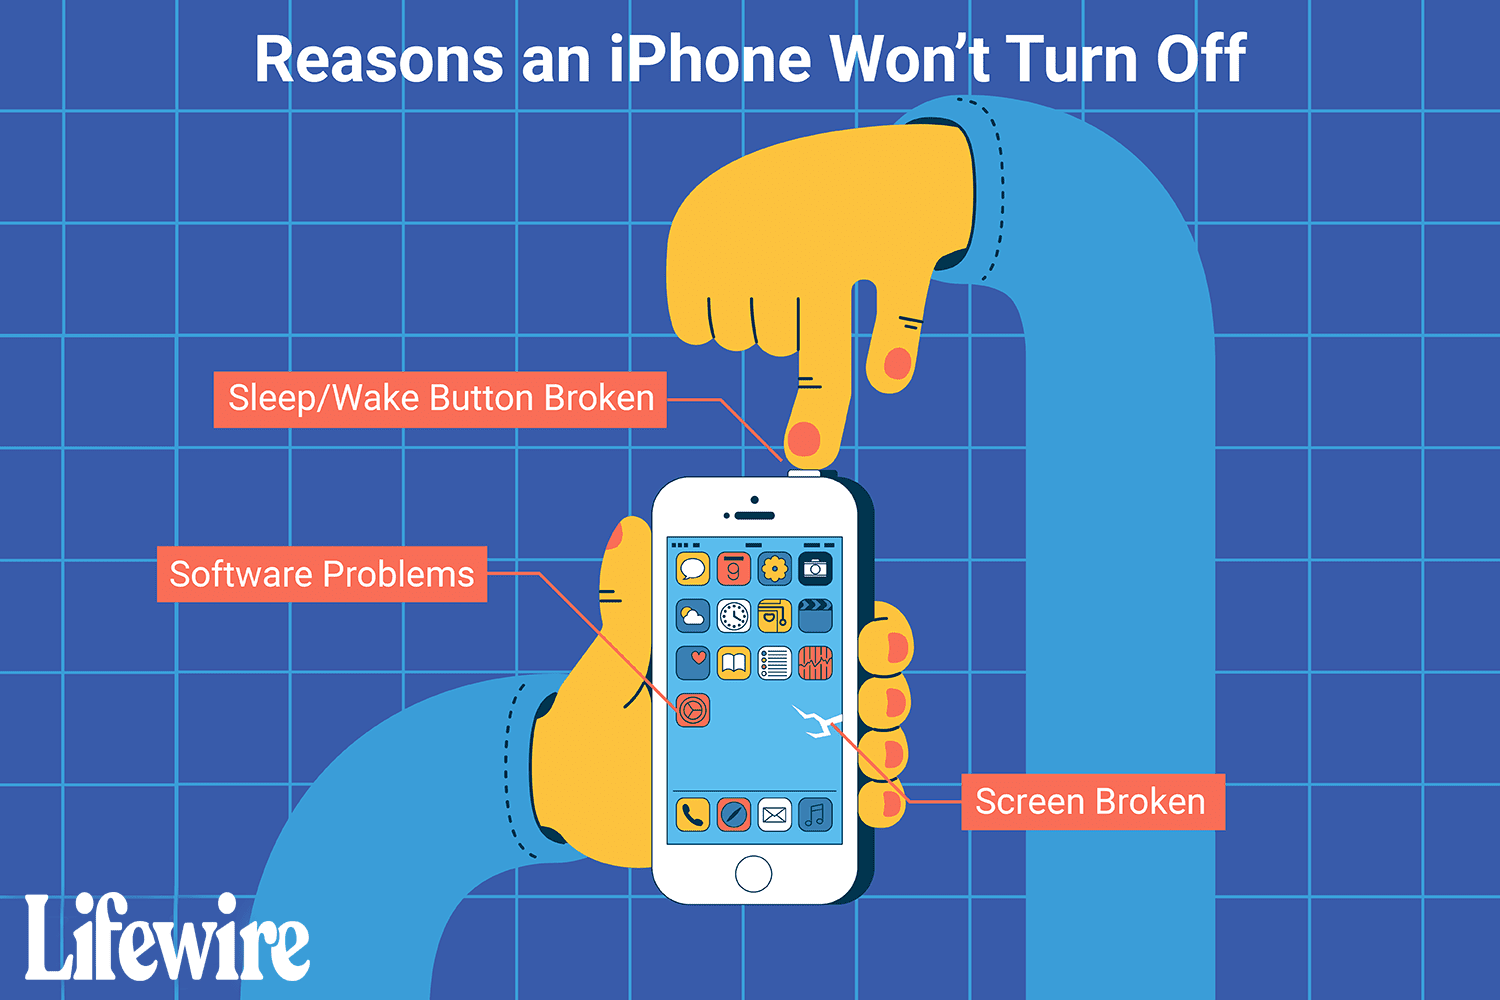 An illustration of the reasons an iPhone won't turn off.